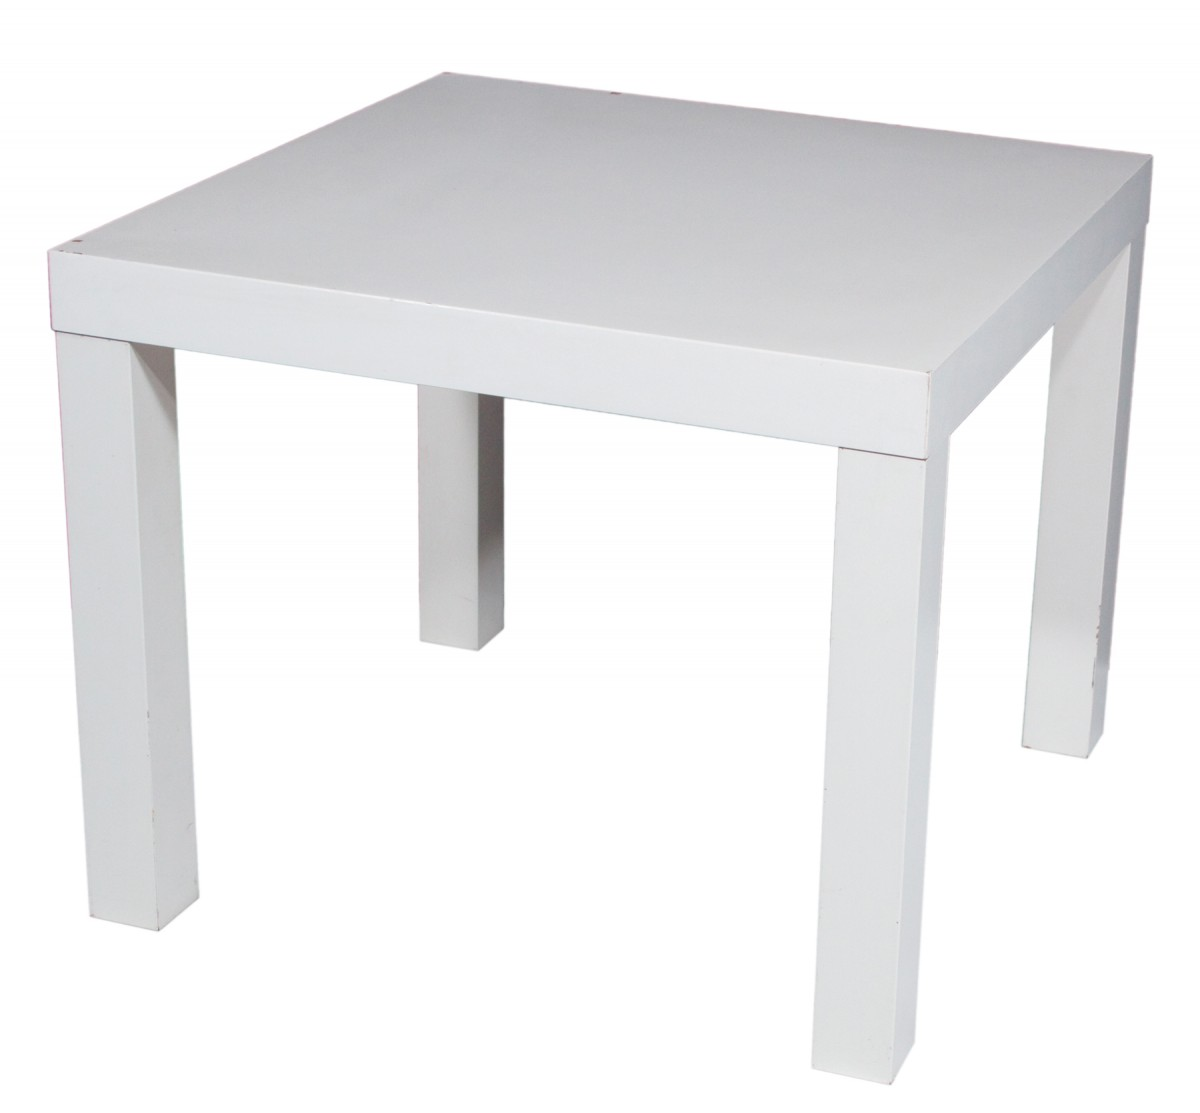 Petites Tables Basses De Salon Petite Table Basse Carrée Blanche Tables De Bar